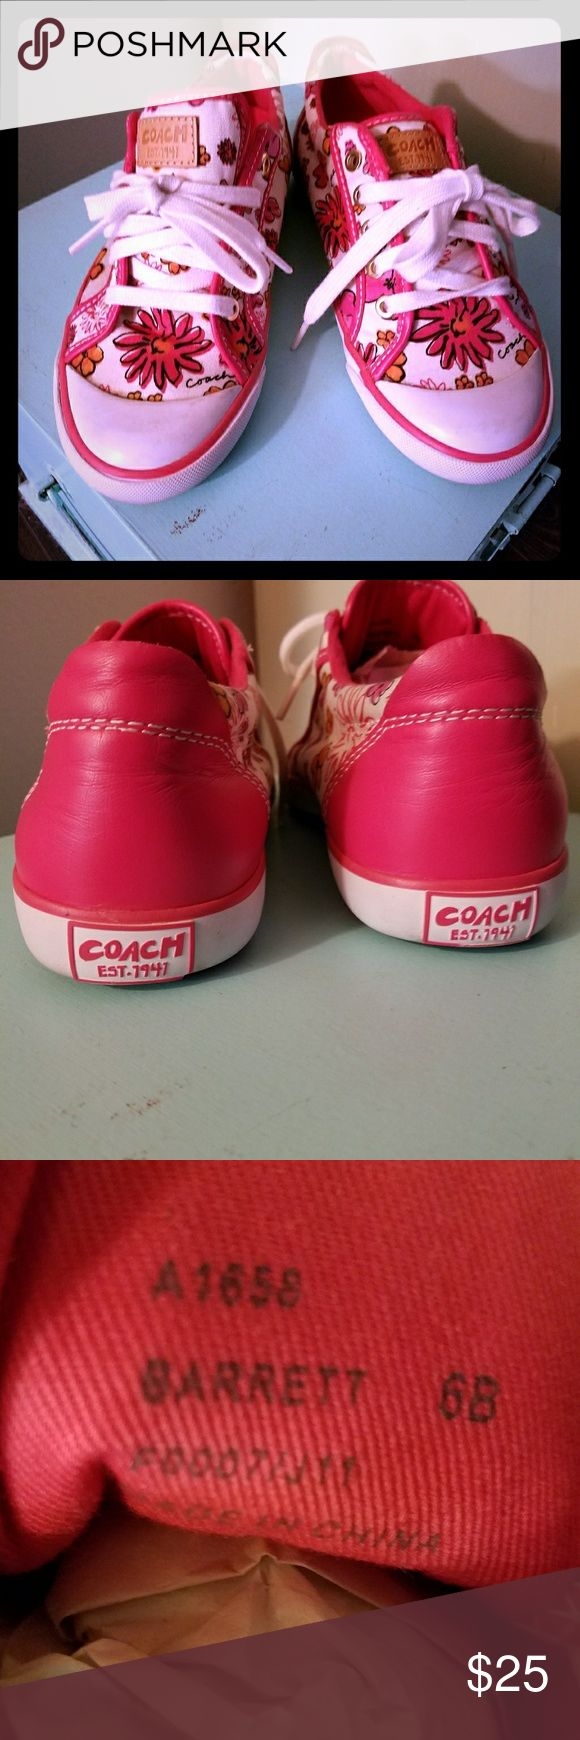 COACH tennis shoes PINK These are almost new Coach Barret style Tennis Shoes! Pink leather, white canvas with PINK flowers. Bright white shoe laces and rubber soles.   I purchased 2 pair of shoes at the Vegas COACH store....after wearing 1x, I see they're the wrong size. :(   Cute with jeans, sun dresses, mini skirts! Firm price. TY Coach Shoes Sneakers